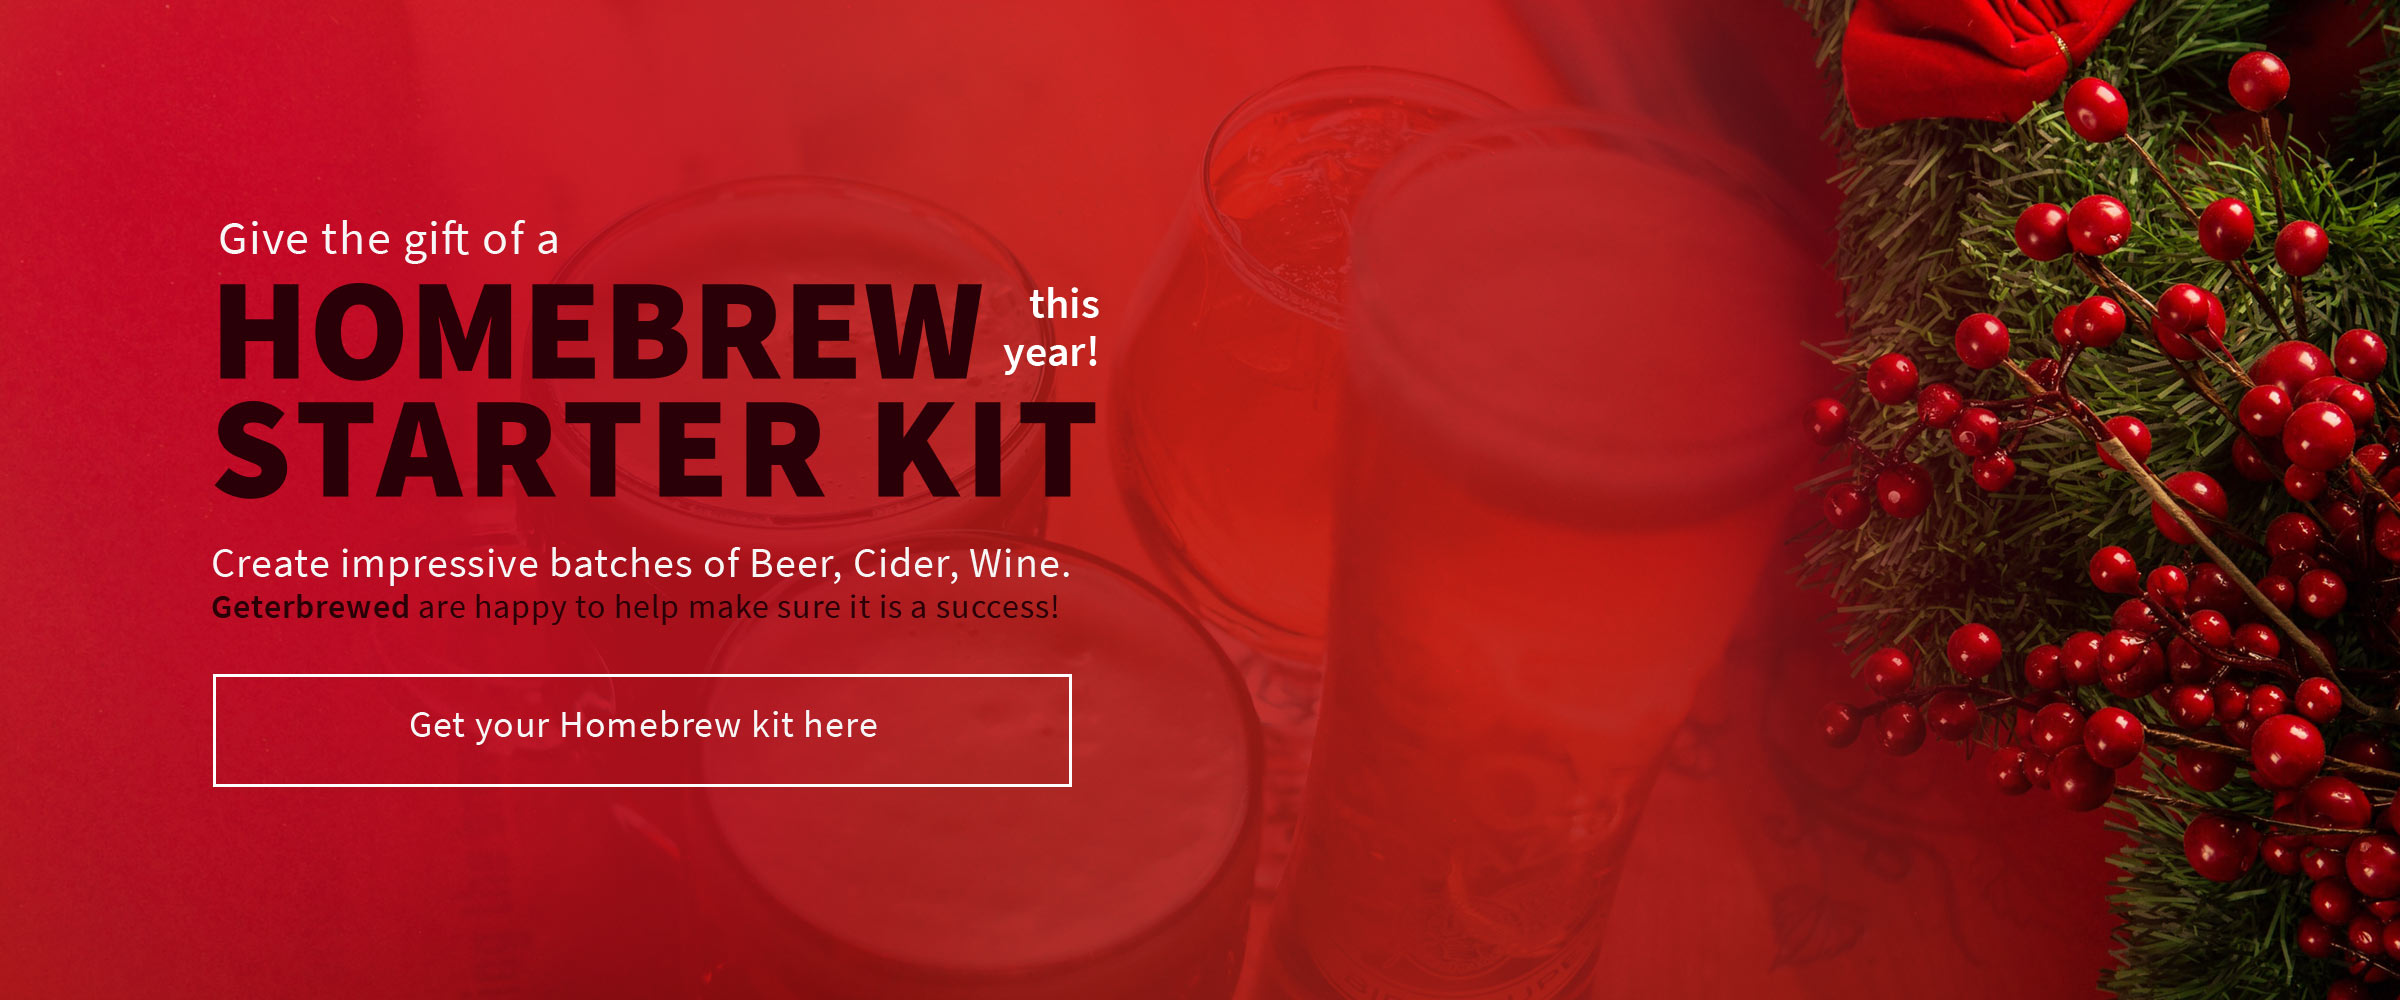 HomeBrew Starter Kit for Christmas